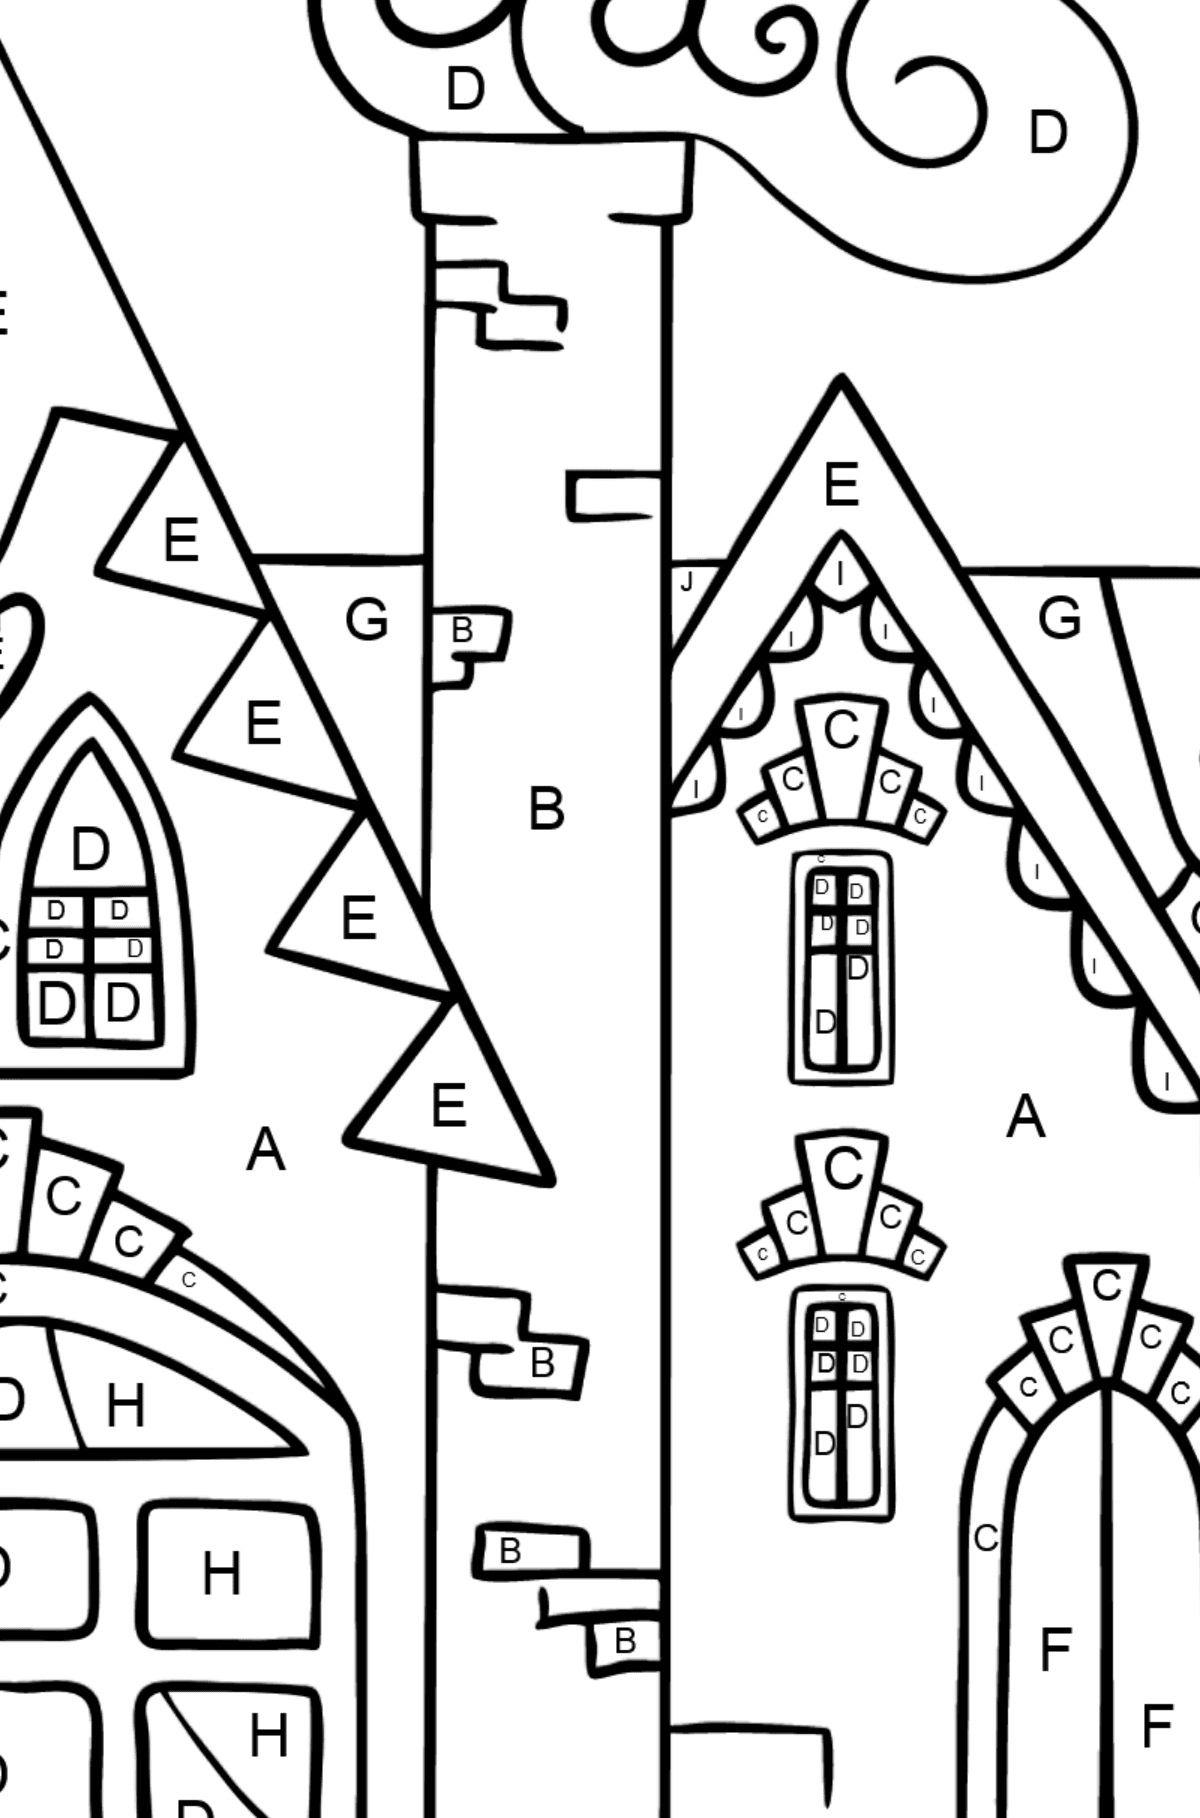 Complex Coloring Page - A Charming House - Coloring by Letters for Kids